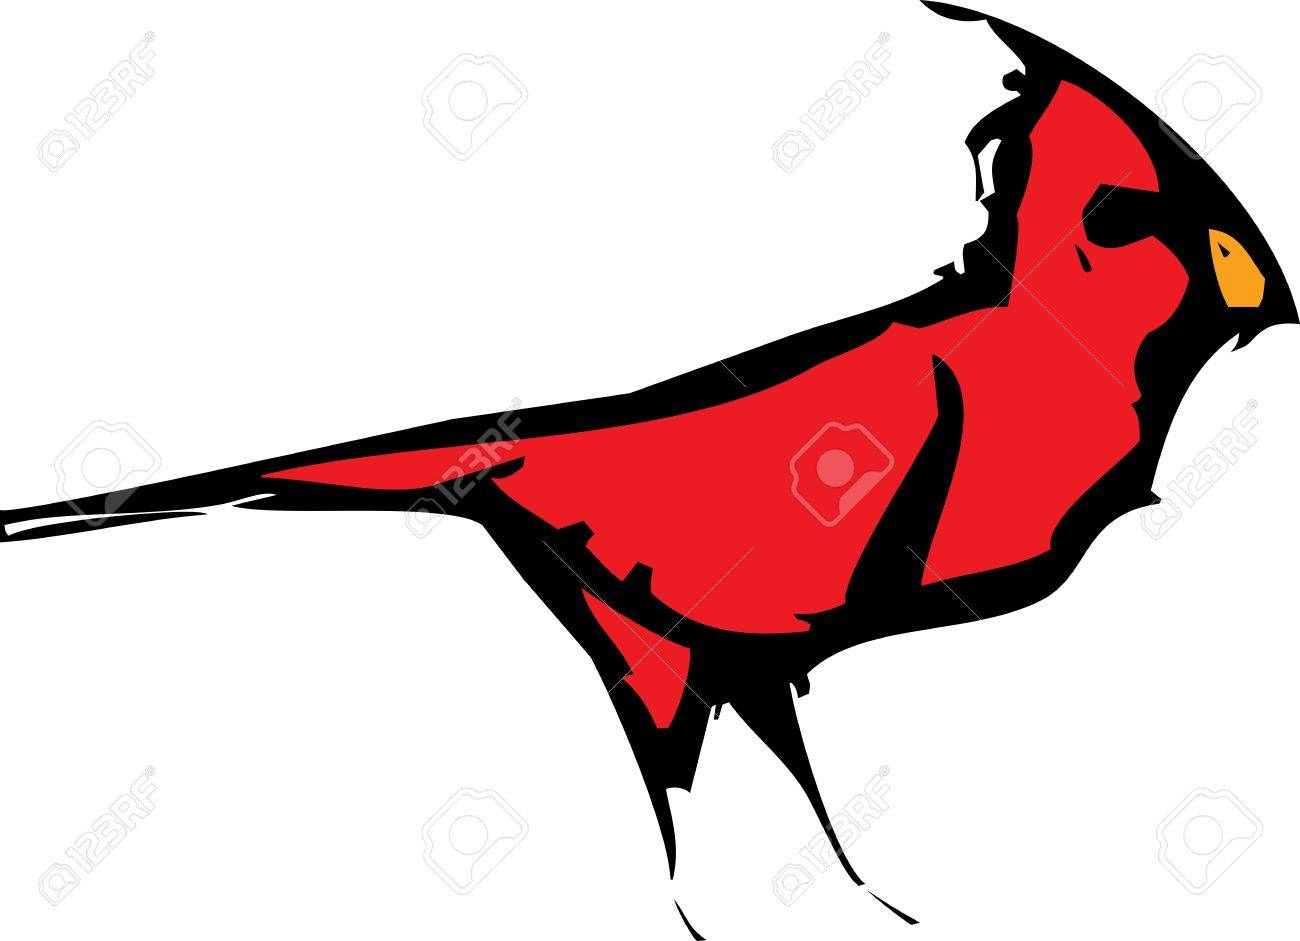 woodcut style image of a red cardinal bird royalty free cliparts